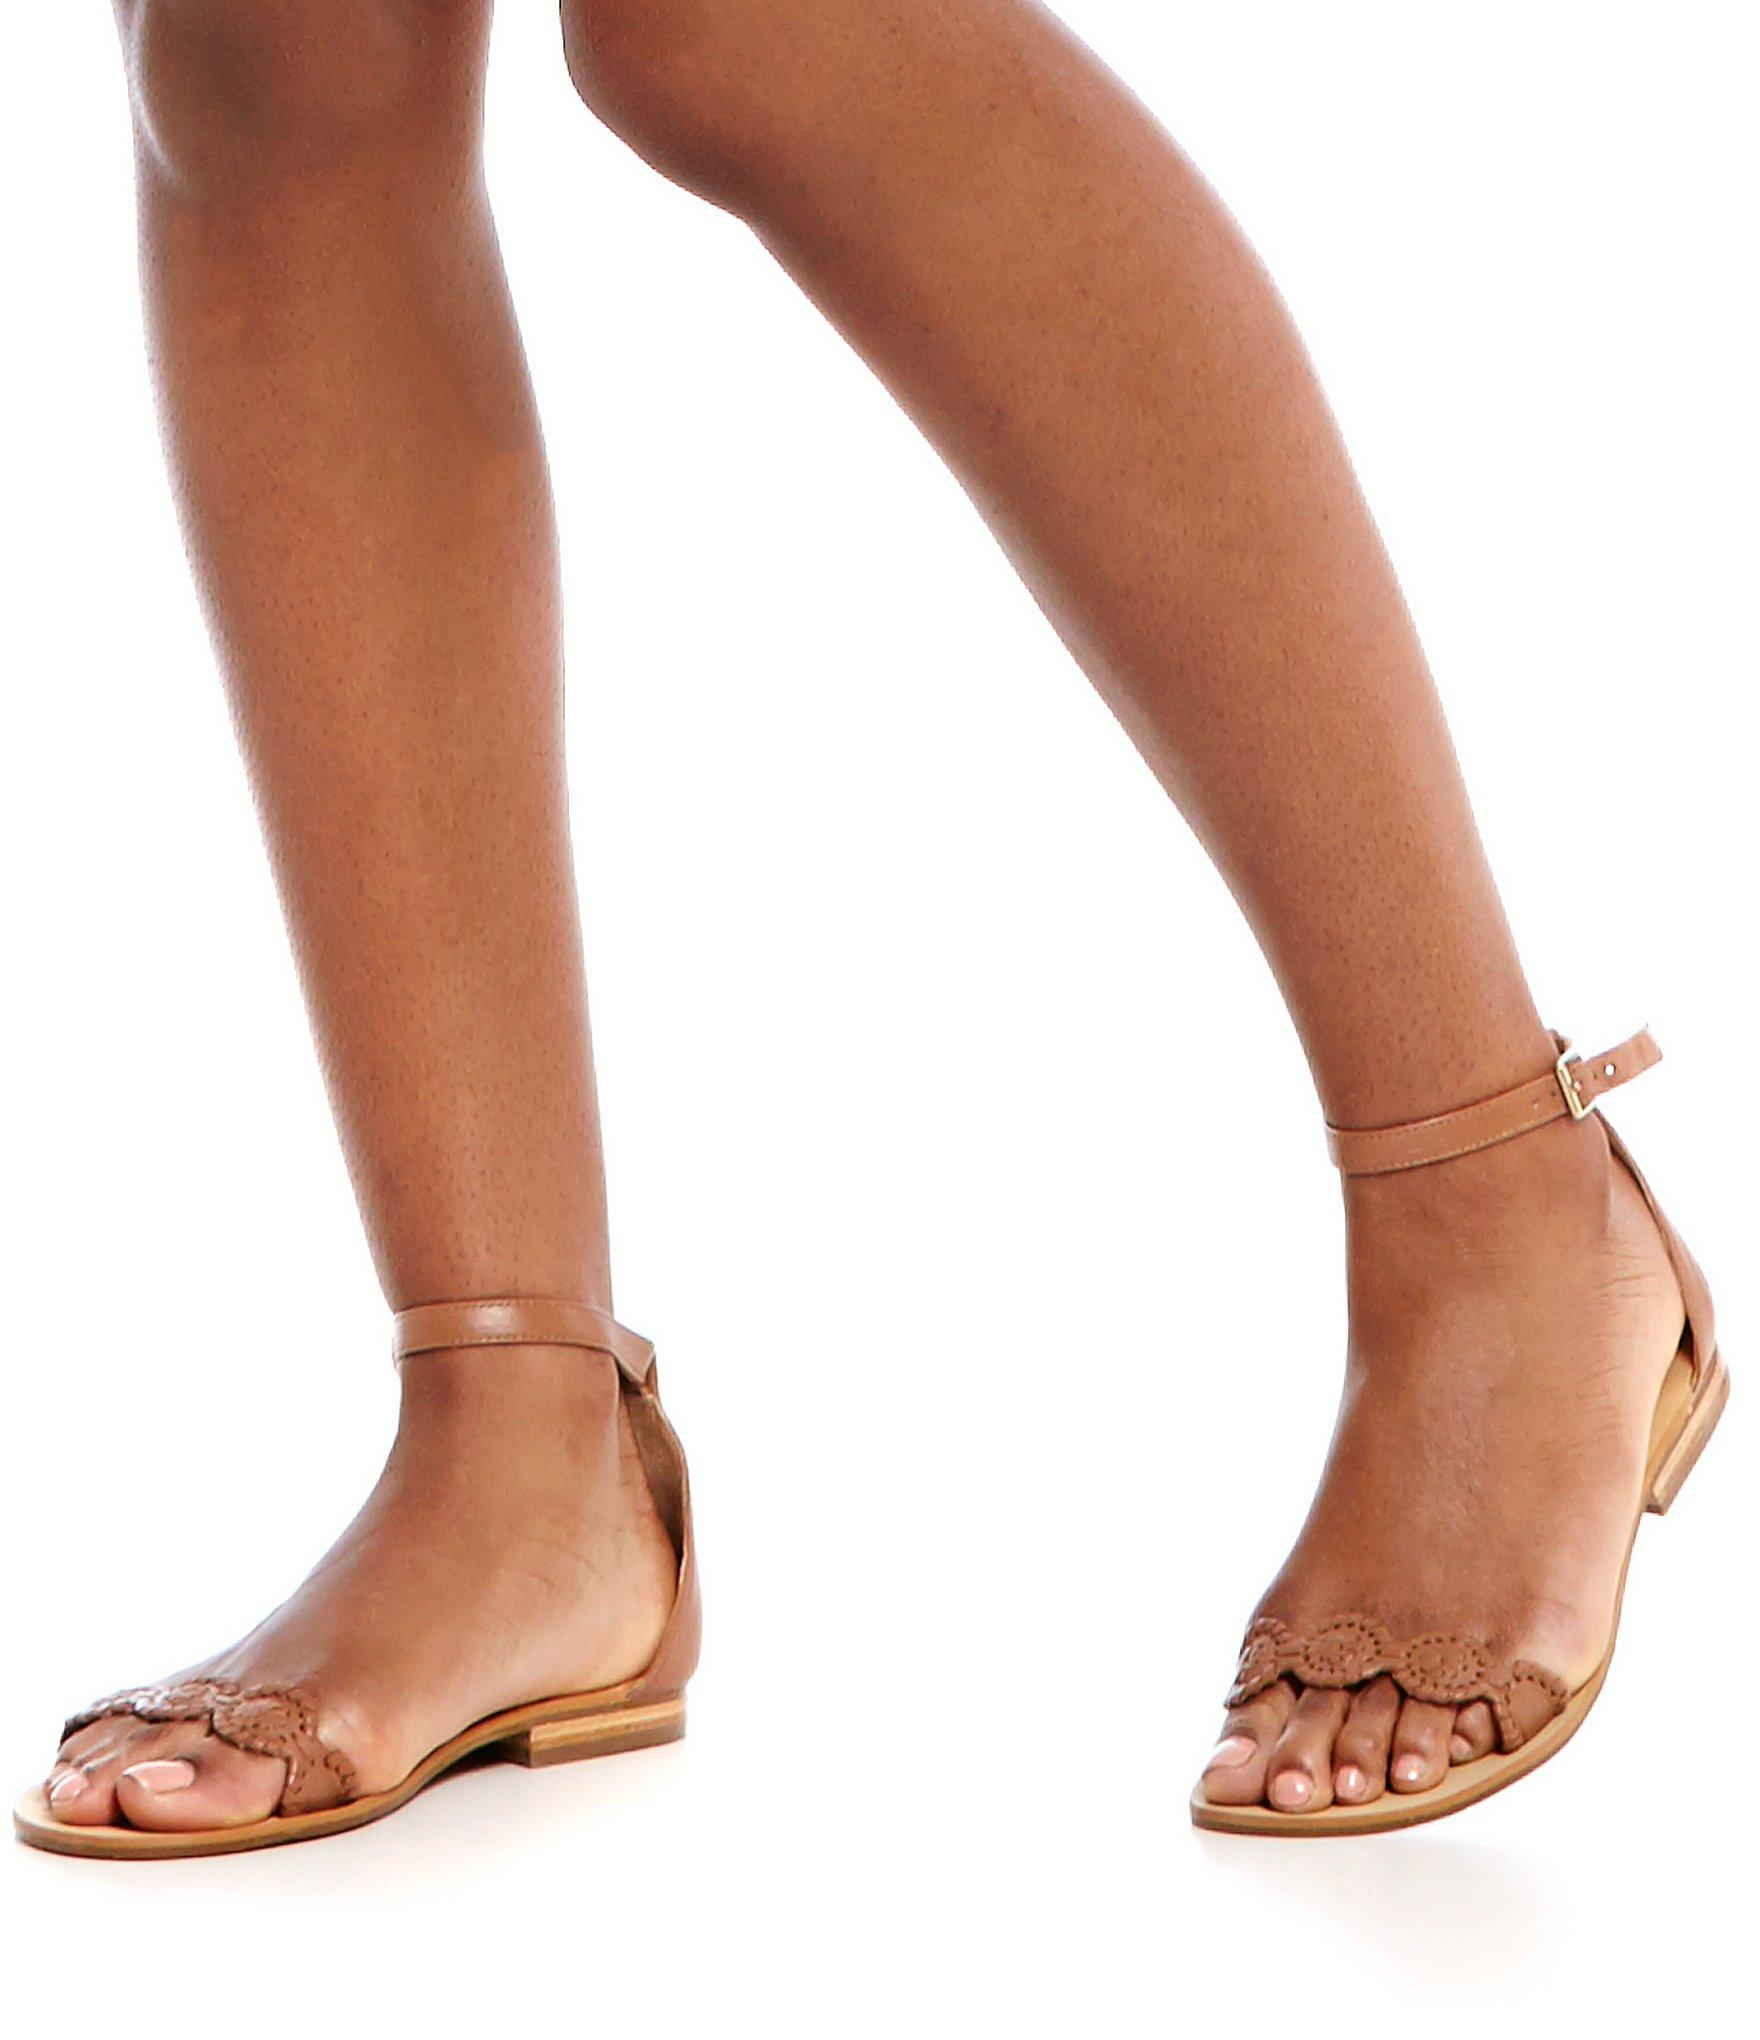 ff16586f38ad5 Lyst - Jack Rogers Daphne Leather Ankle Strap Sandals